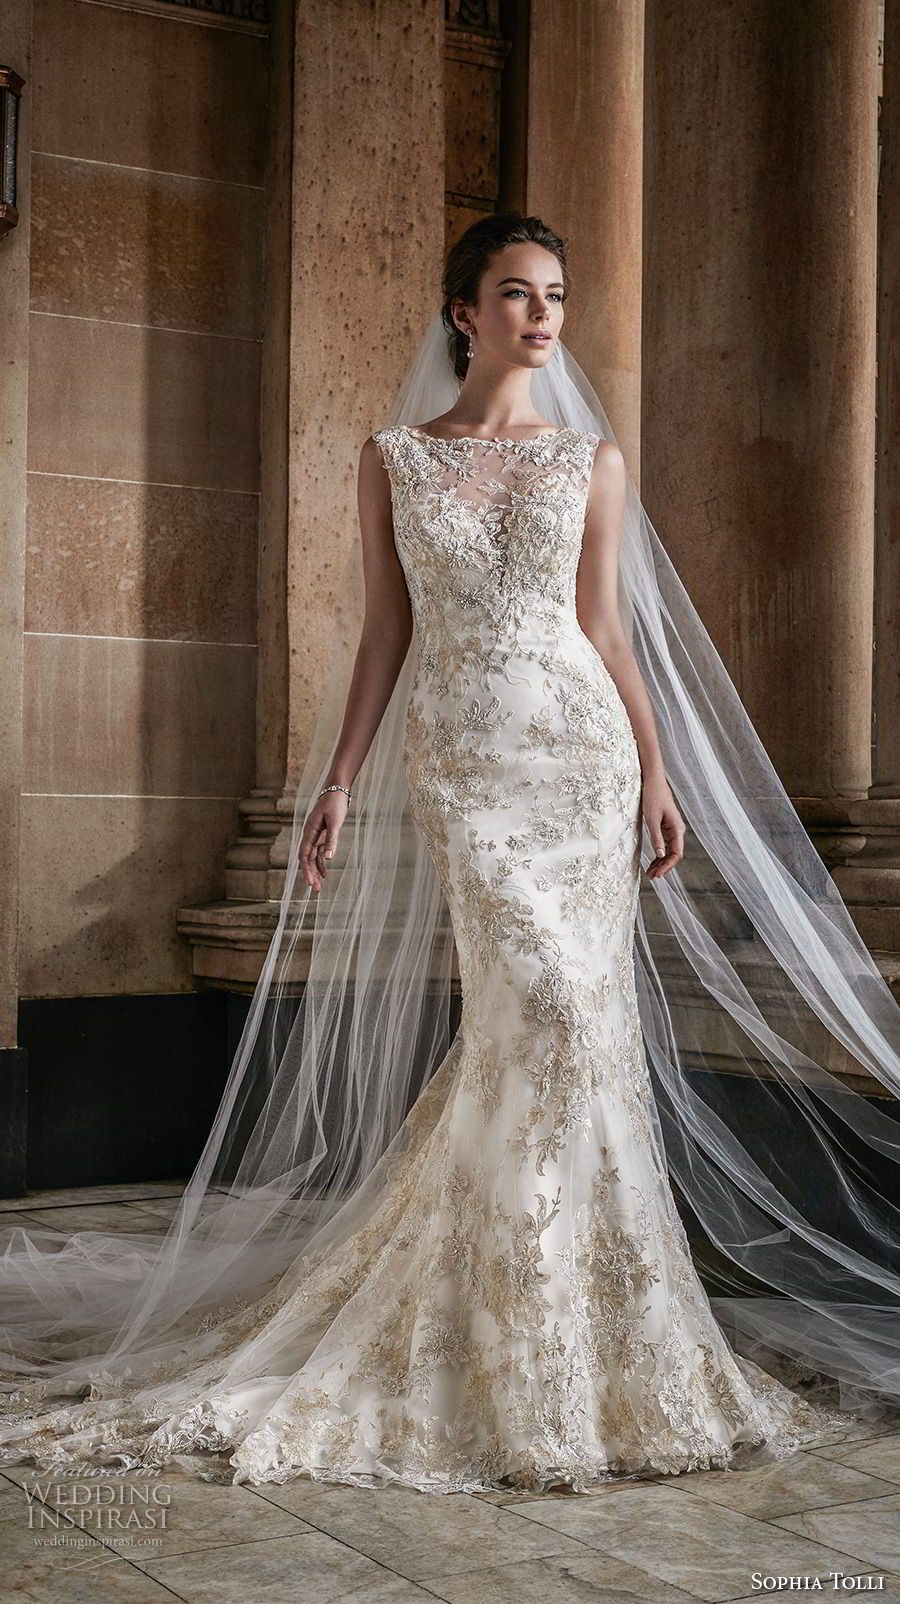 sophia tolli fall 2017 bridal sleeveless illusion bateau sweetheart neckline full embellishment gold embroidery elegant fit and flare mermaid wedding dress open back chapel train (1) mv